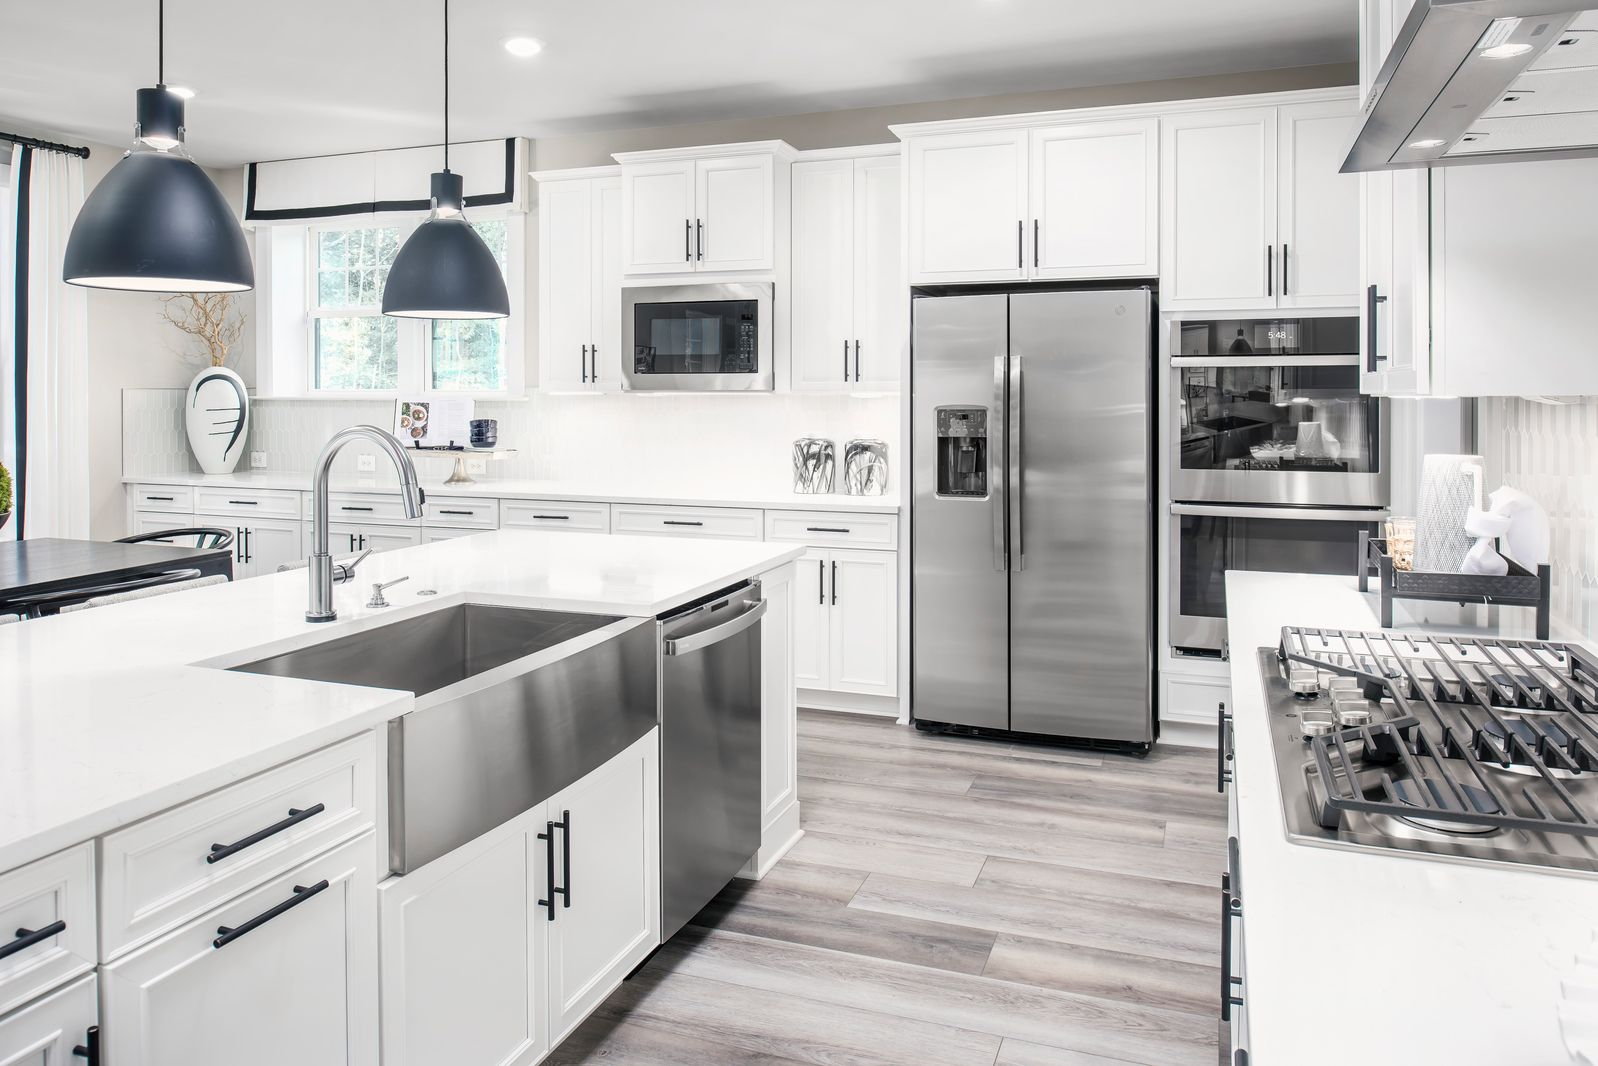 Kitchen featured in the Stratford Hall By NVHomes in Washington, VA